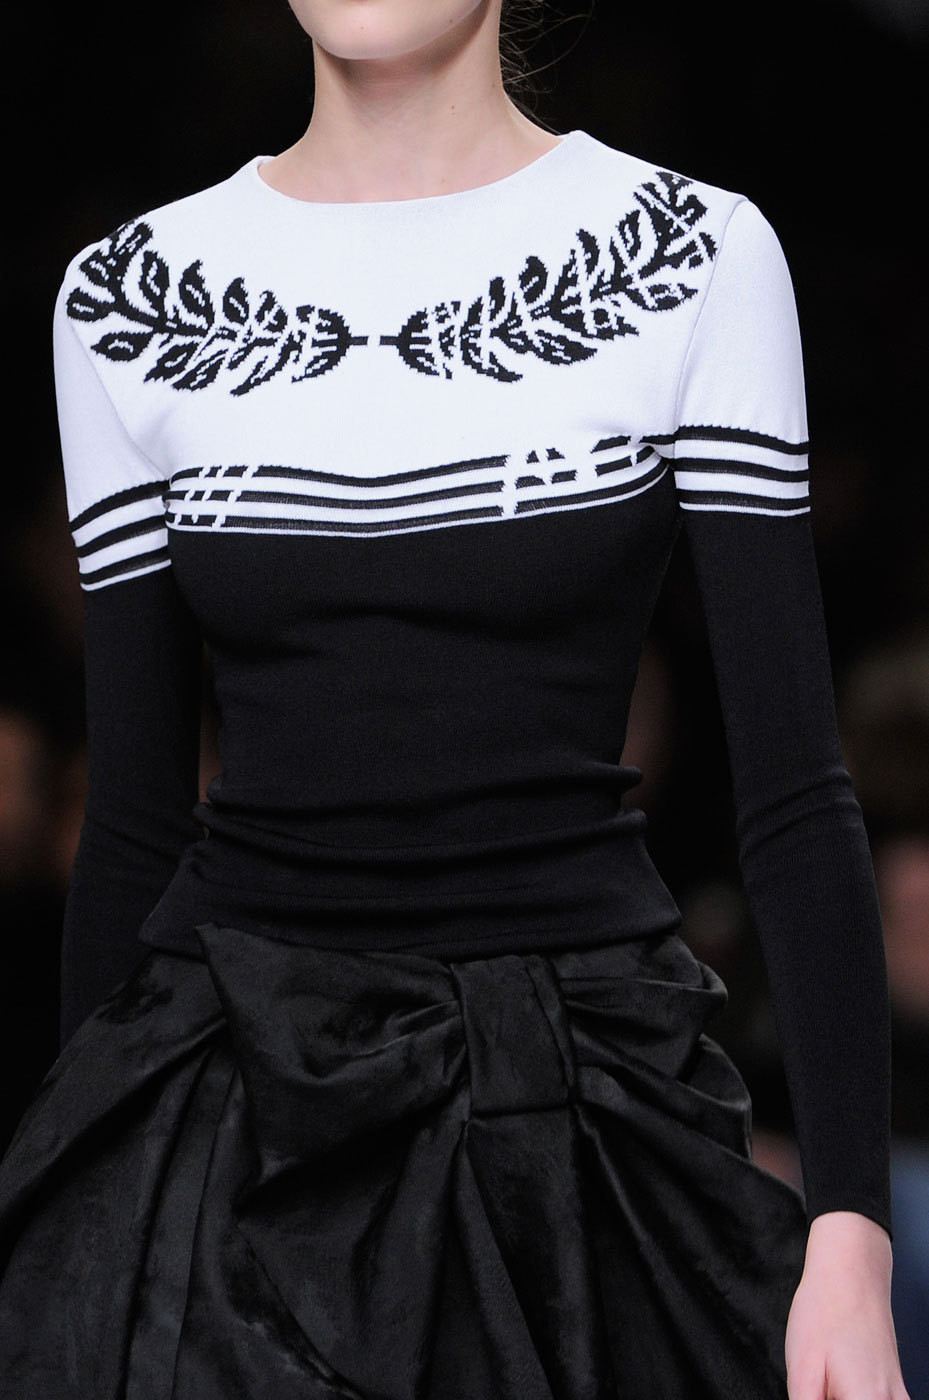 girlannachronism:   Viktor & Rolf fall 2013 rtw details   that body doesn't exist actually